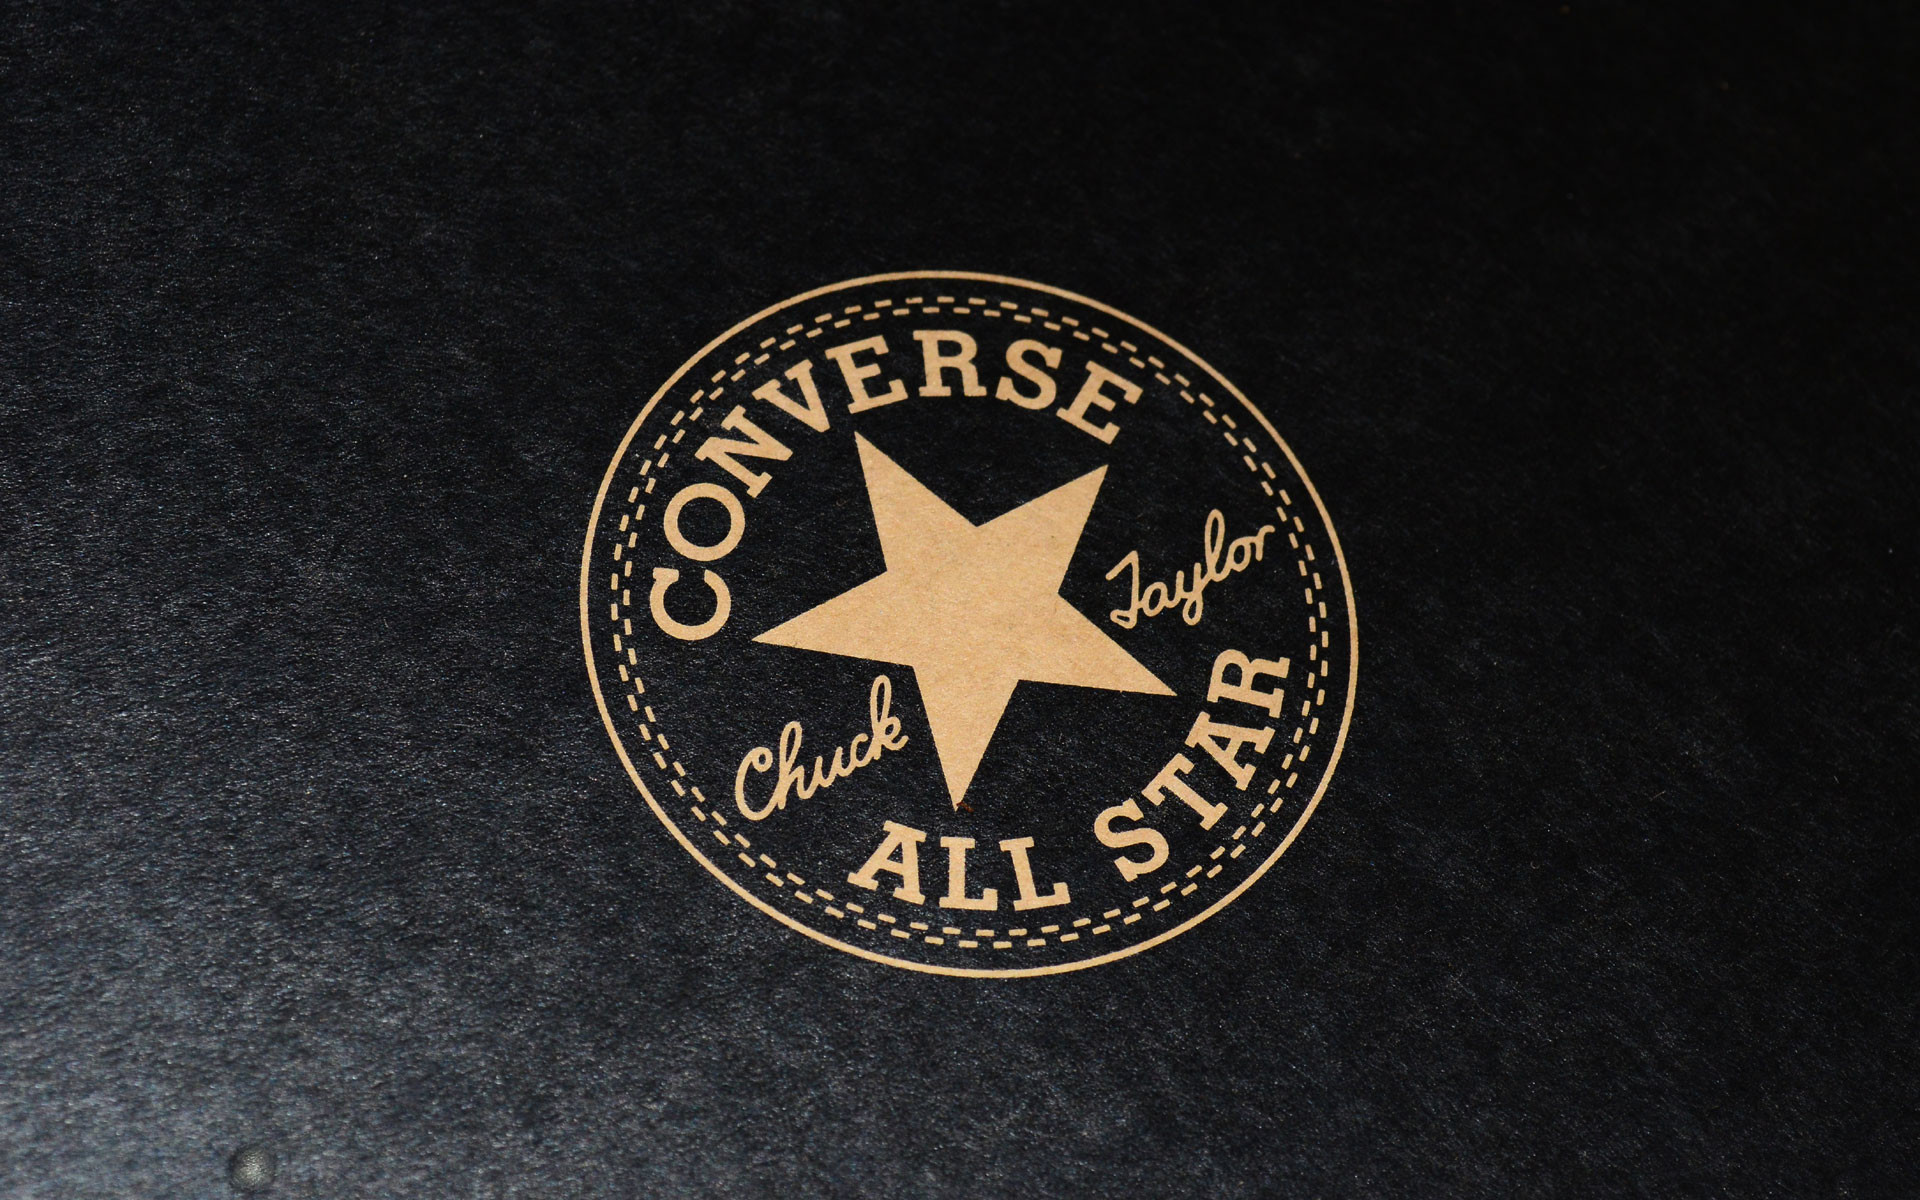 Converse logo wallpaper hd.